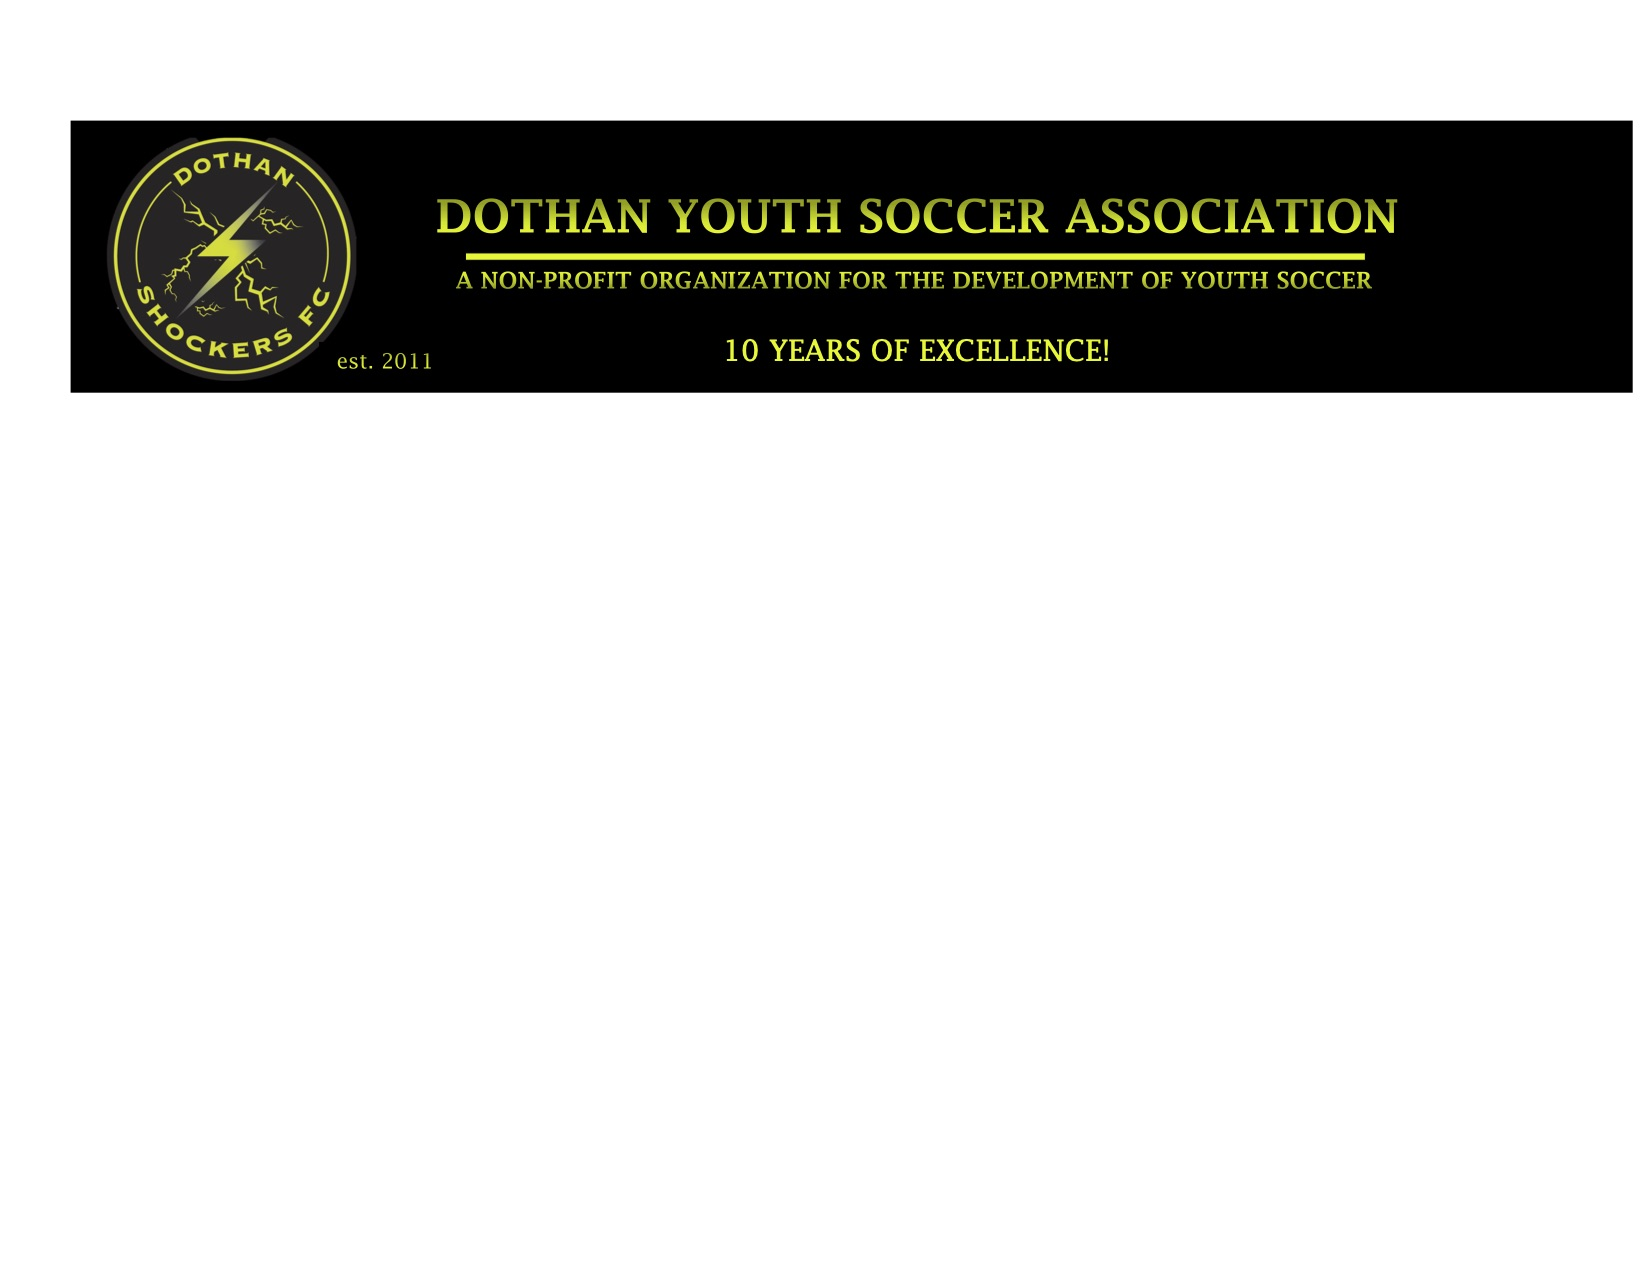 Dothan Youth Soccer Association, Soccer, Goal, Field